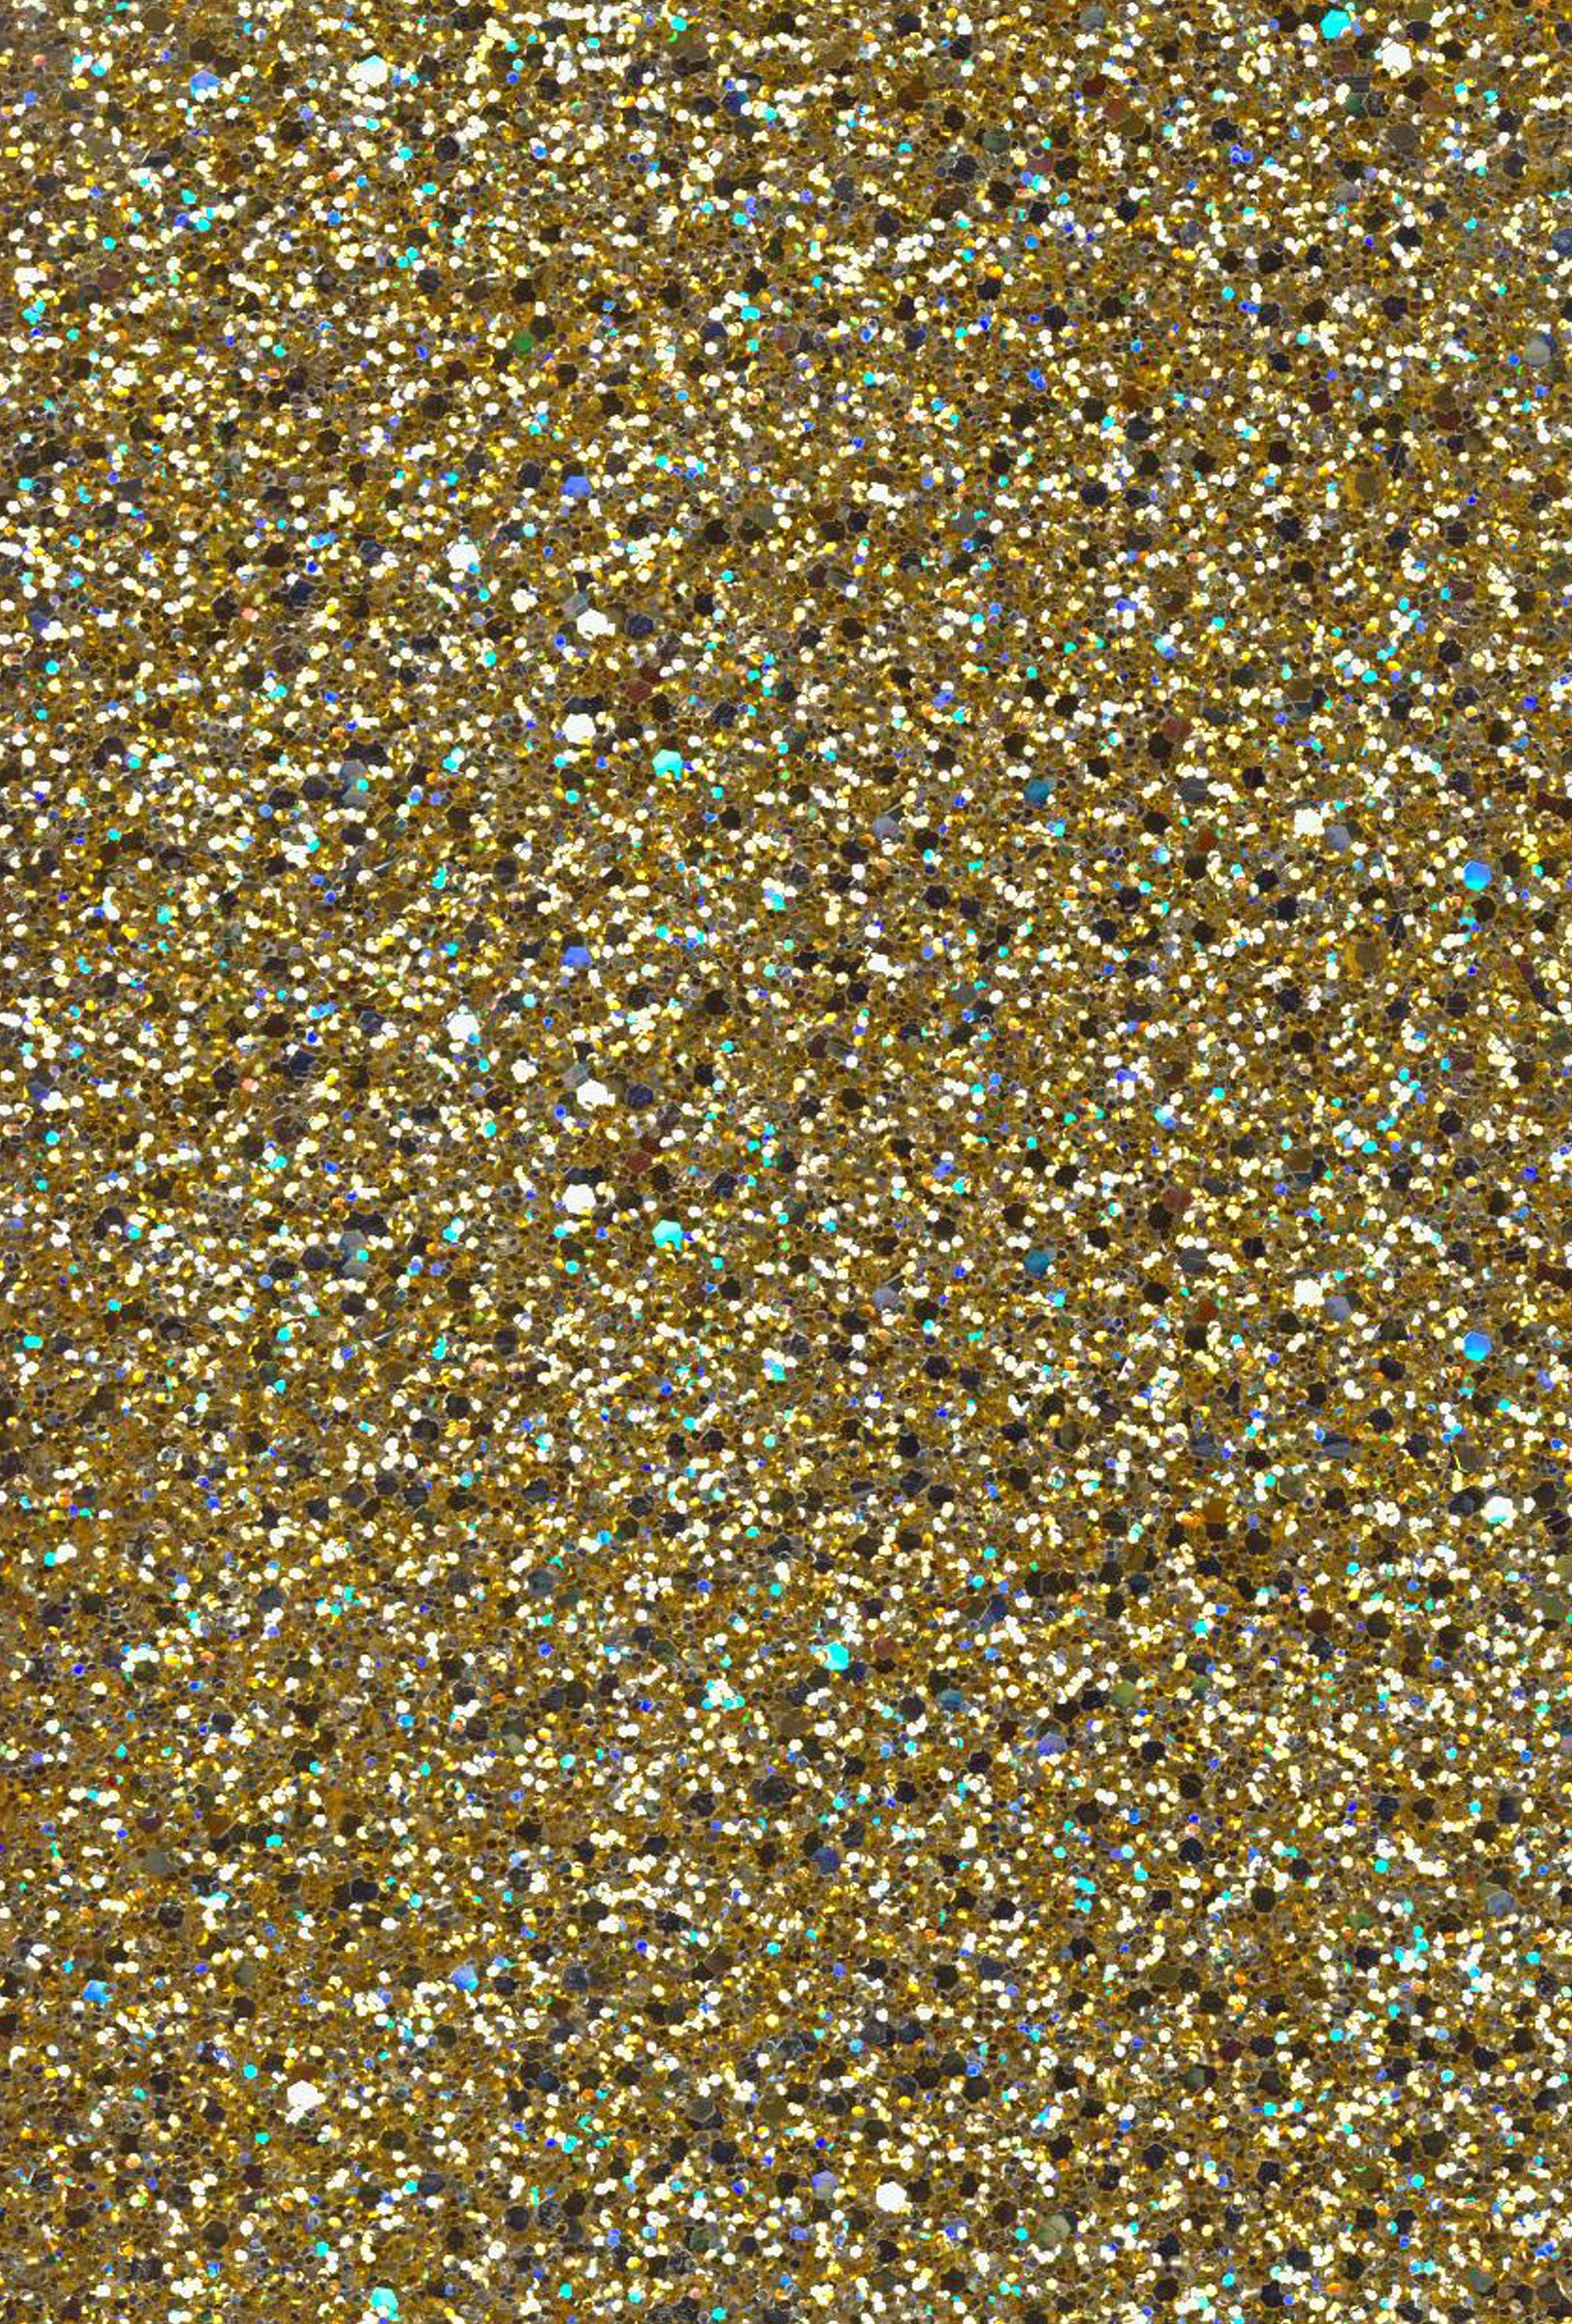 Gold glitter desktop wallpaper wallpapersafari - Gold desktop background ...